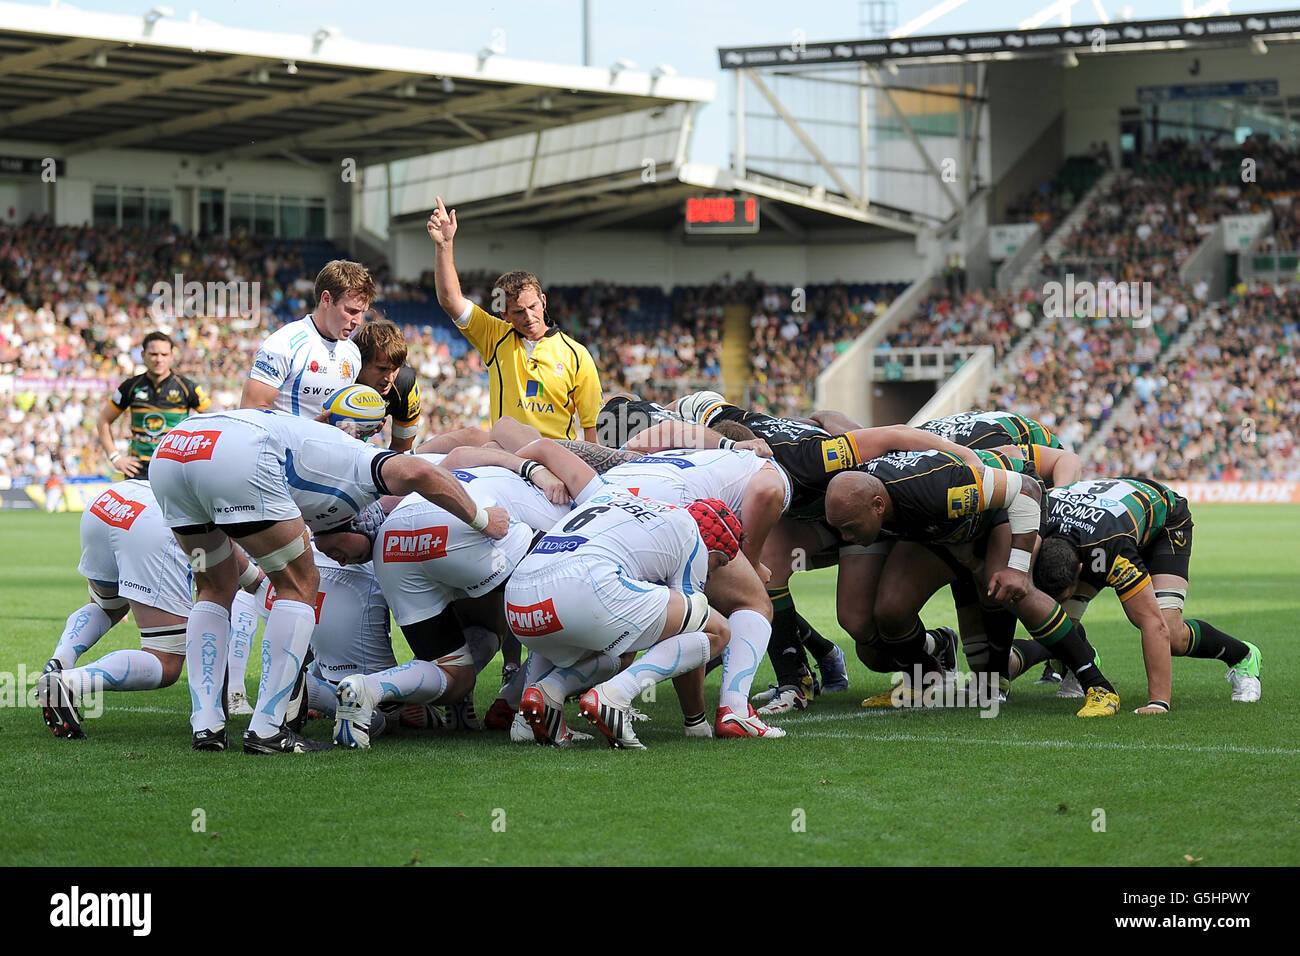 Rugby Union - Aviva Premiership - Northampton Saints v Exeter Chiefs - Franklin's Gardens - Stock Image